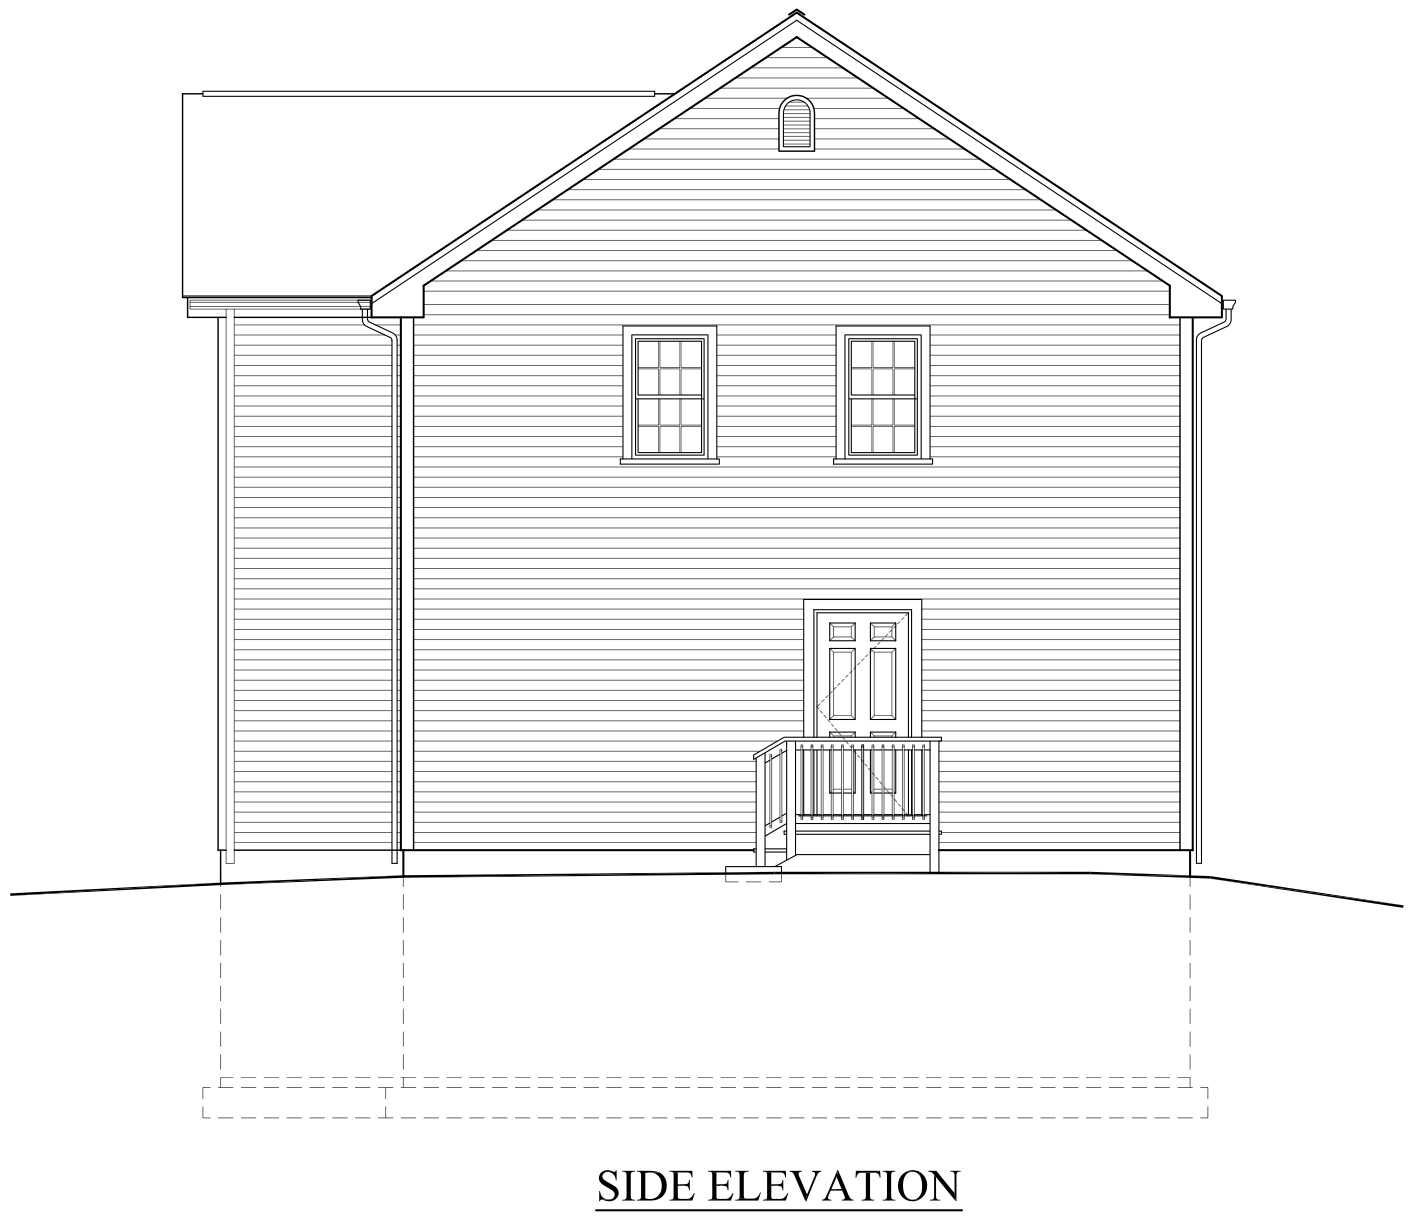 Elevation Plan For Home : What is front elevation